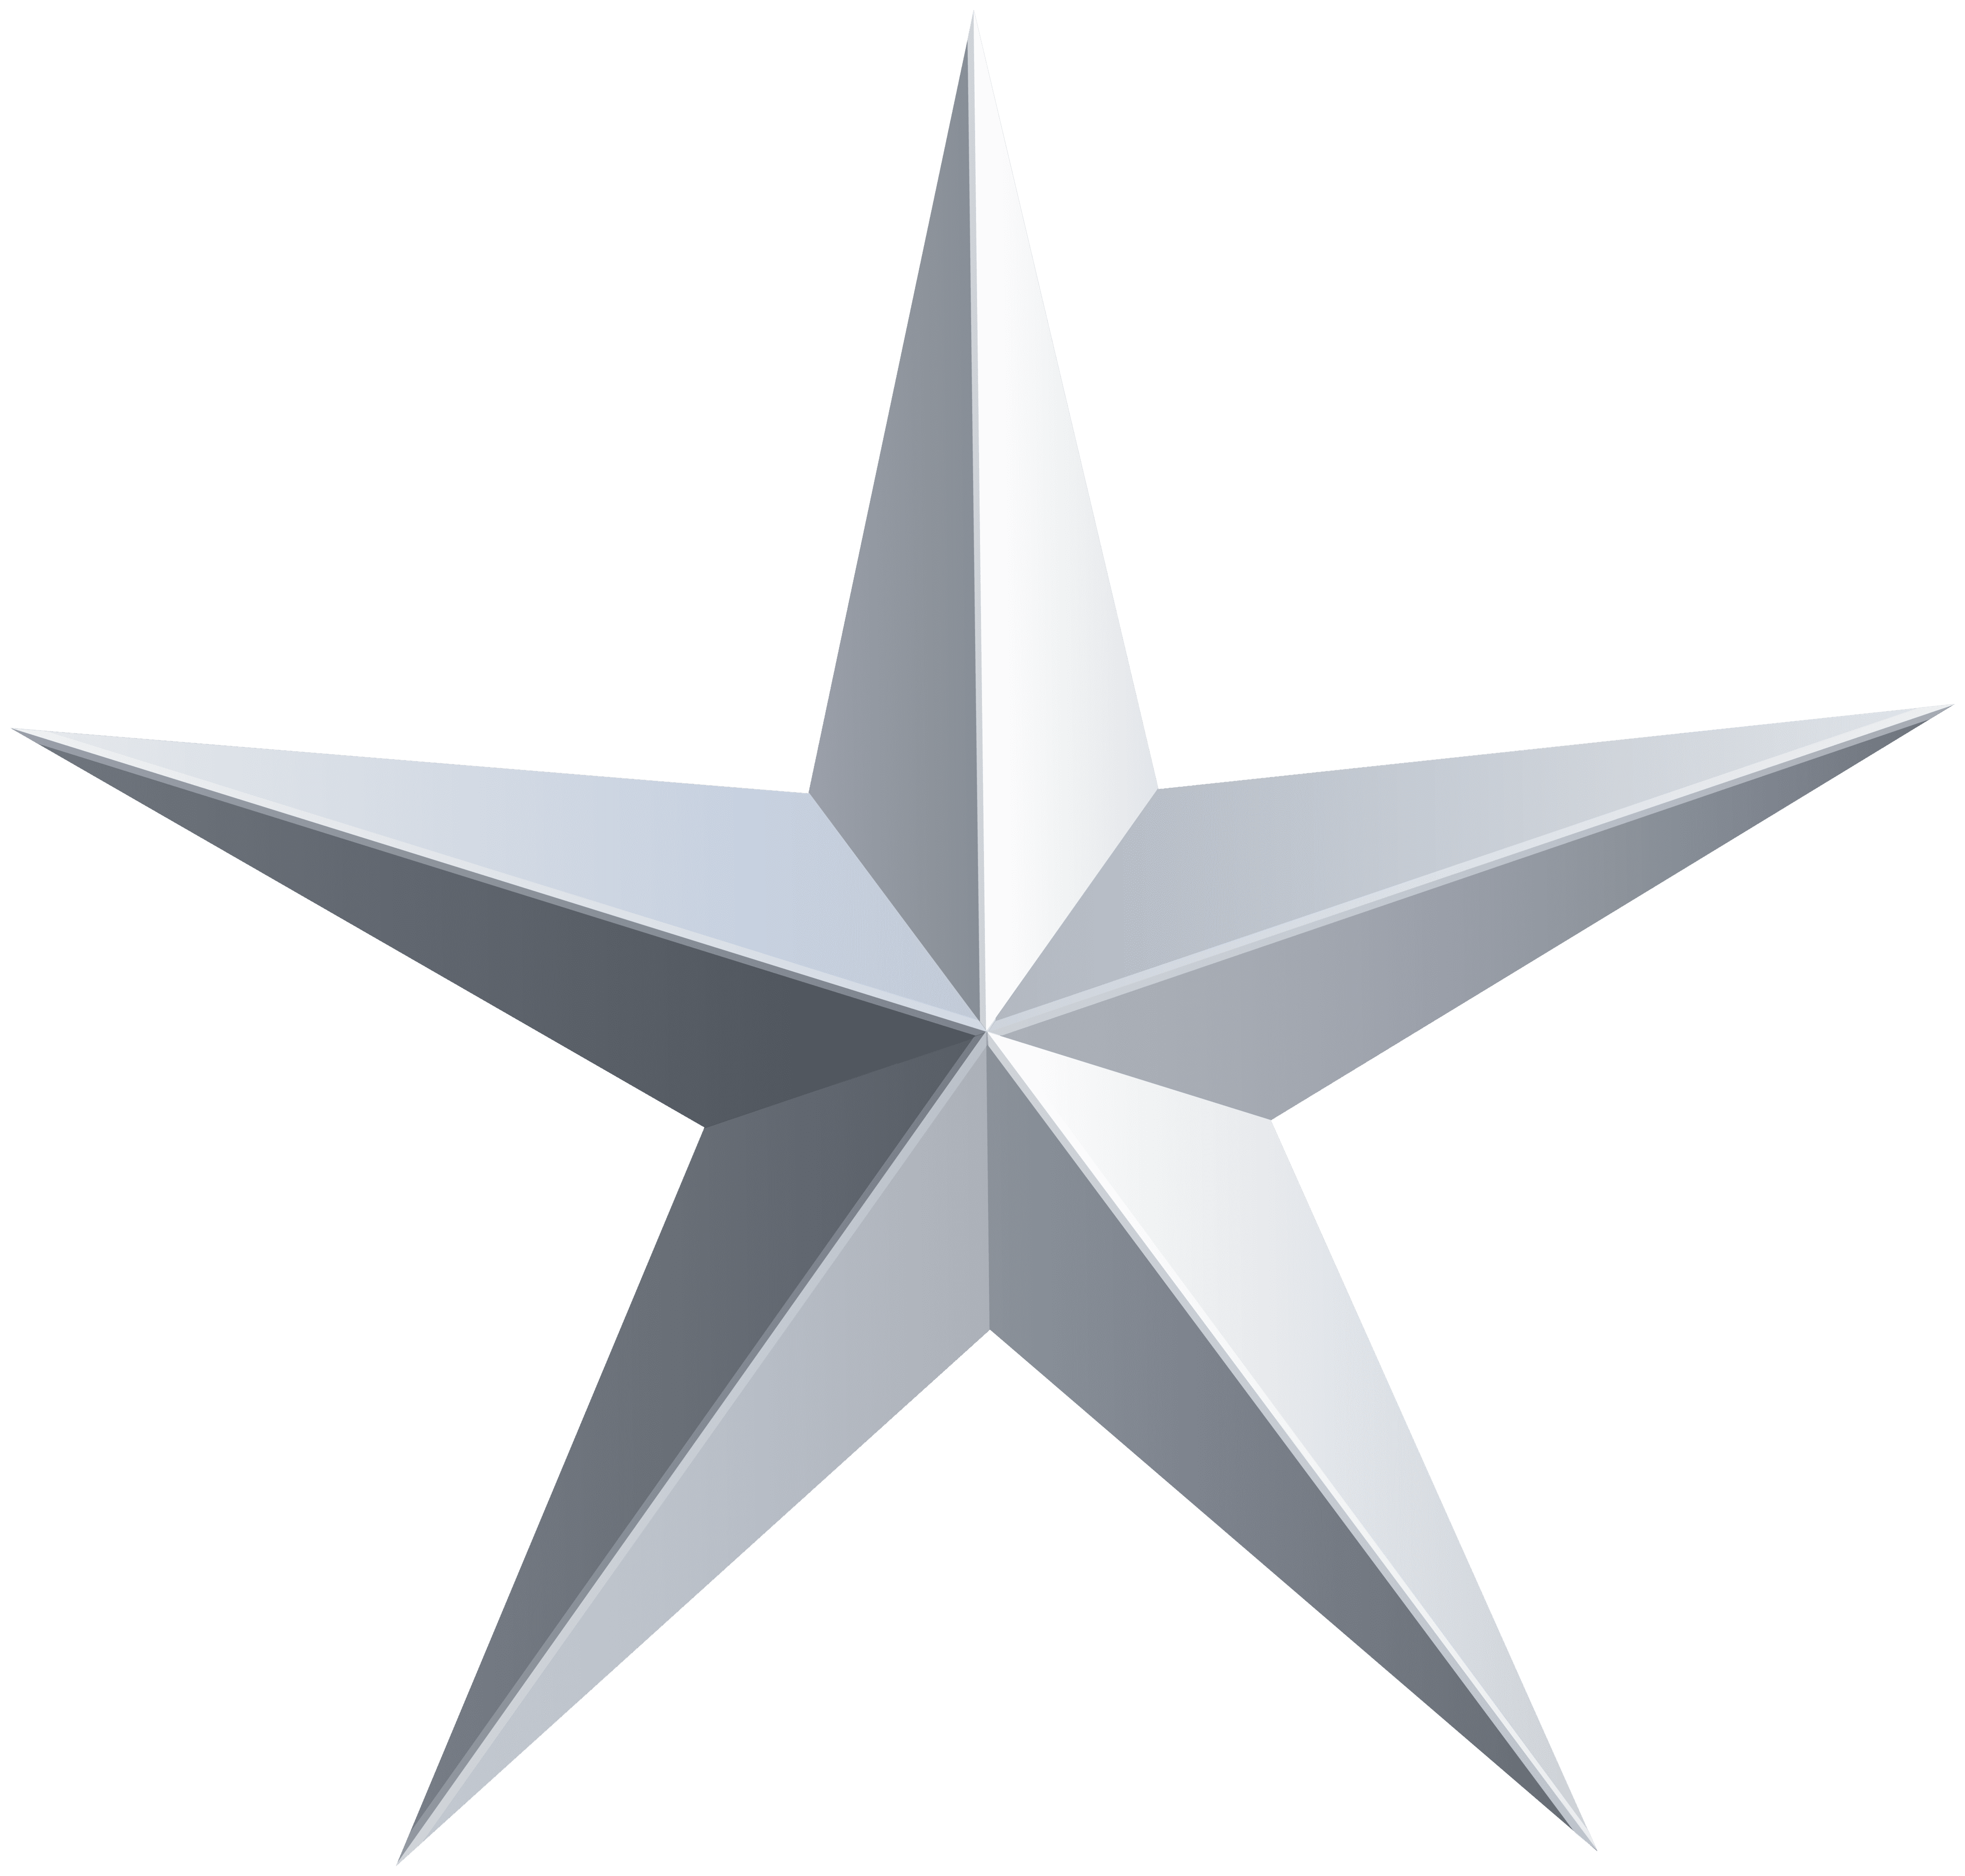 Silver Star Transparent PNG Clip Art